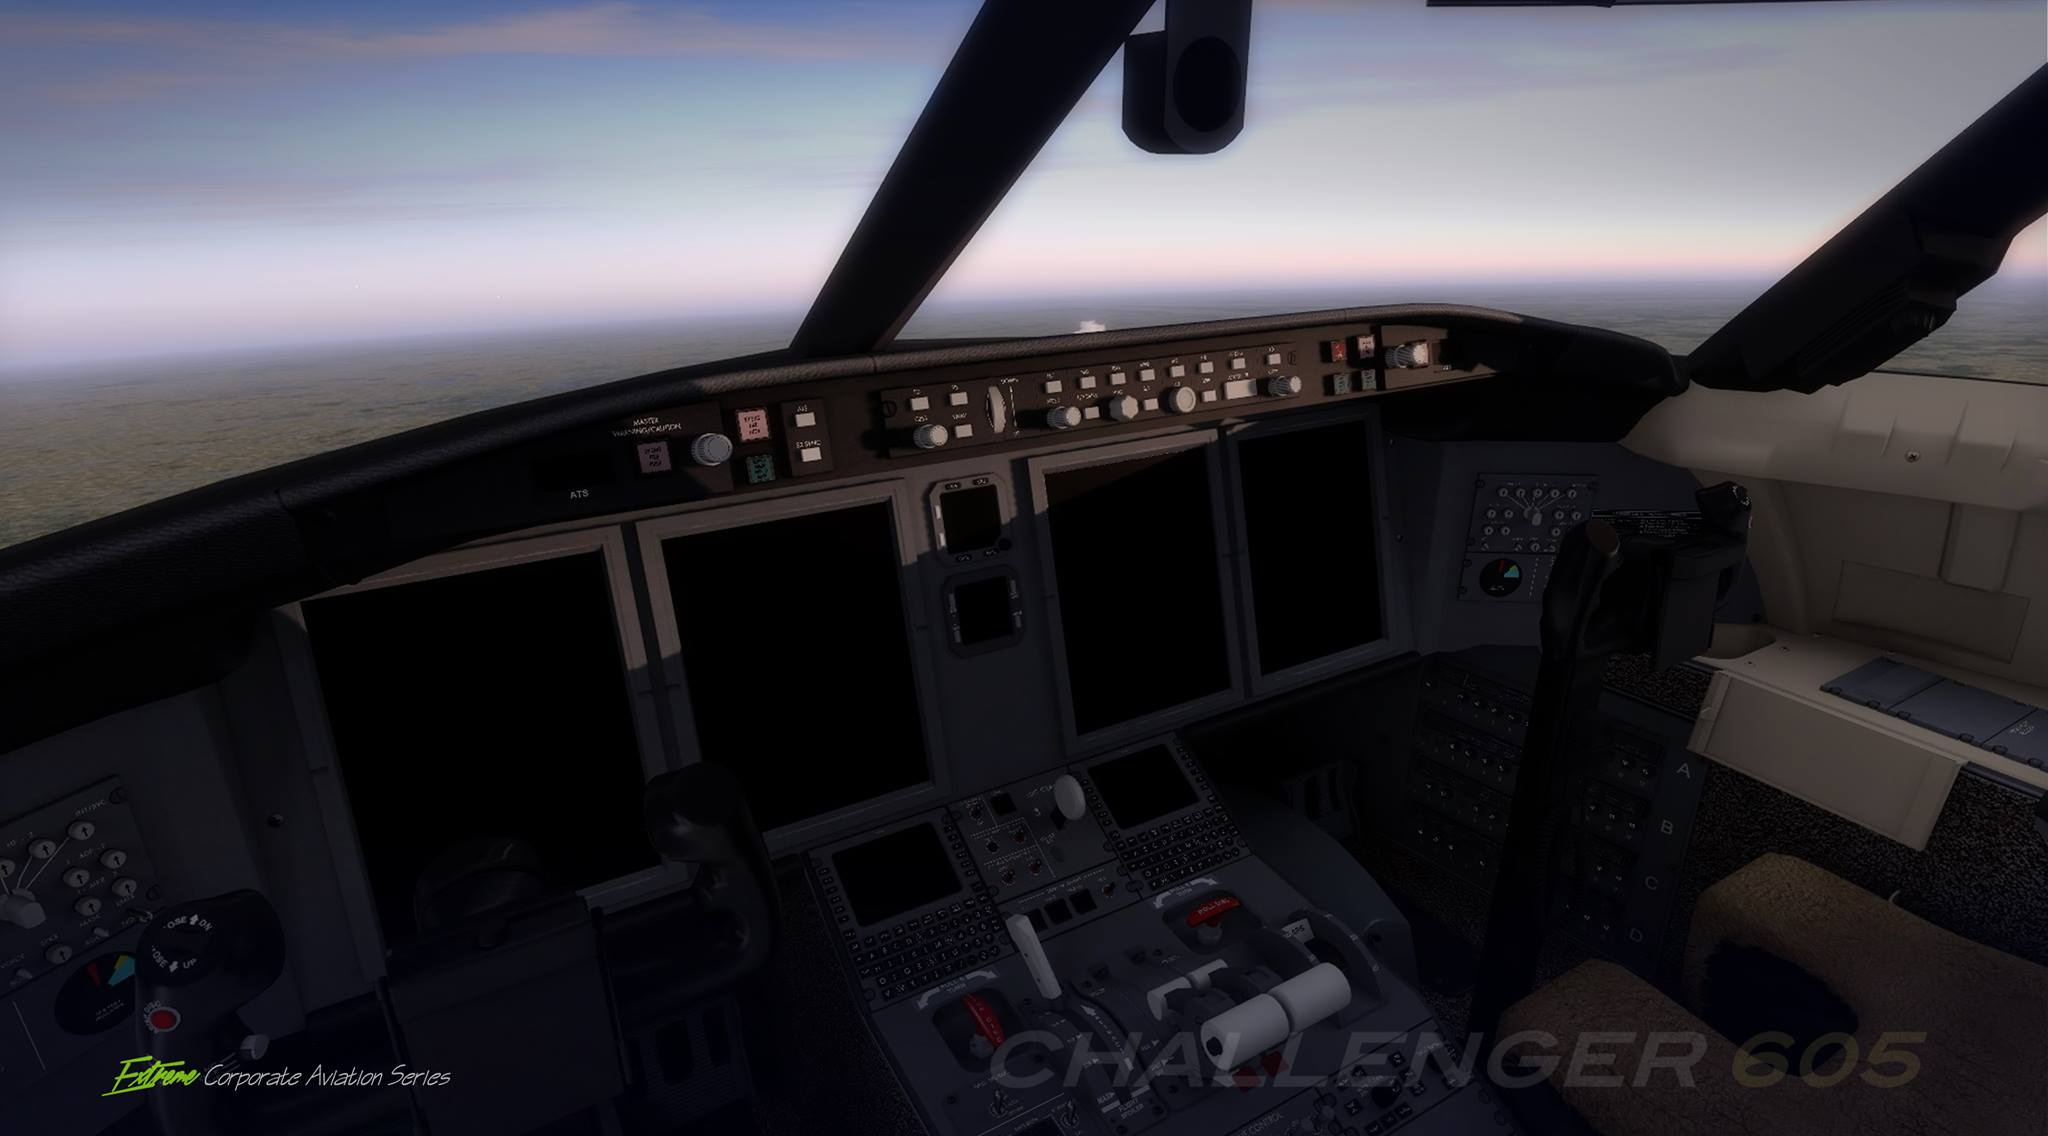 Eaglesoft - Challenger Experimental 605 Preview | This is a picture ...